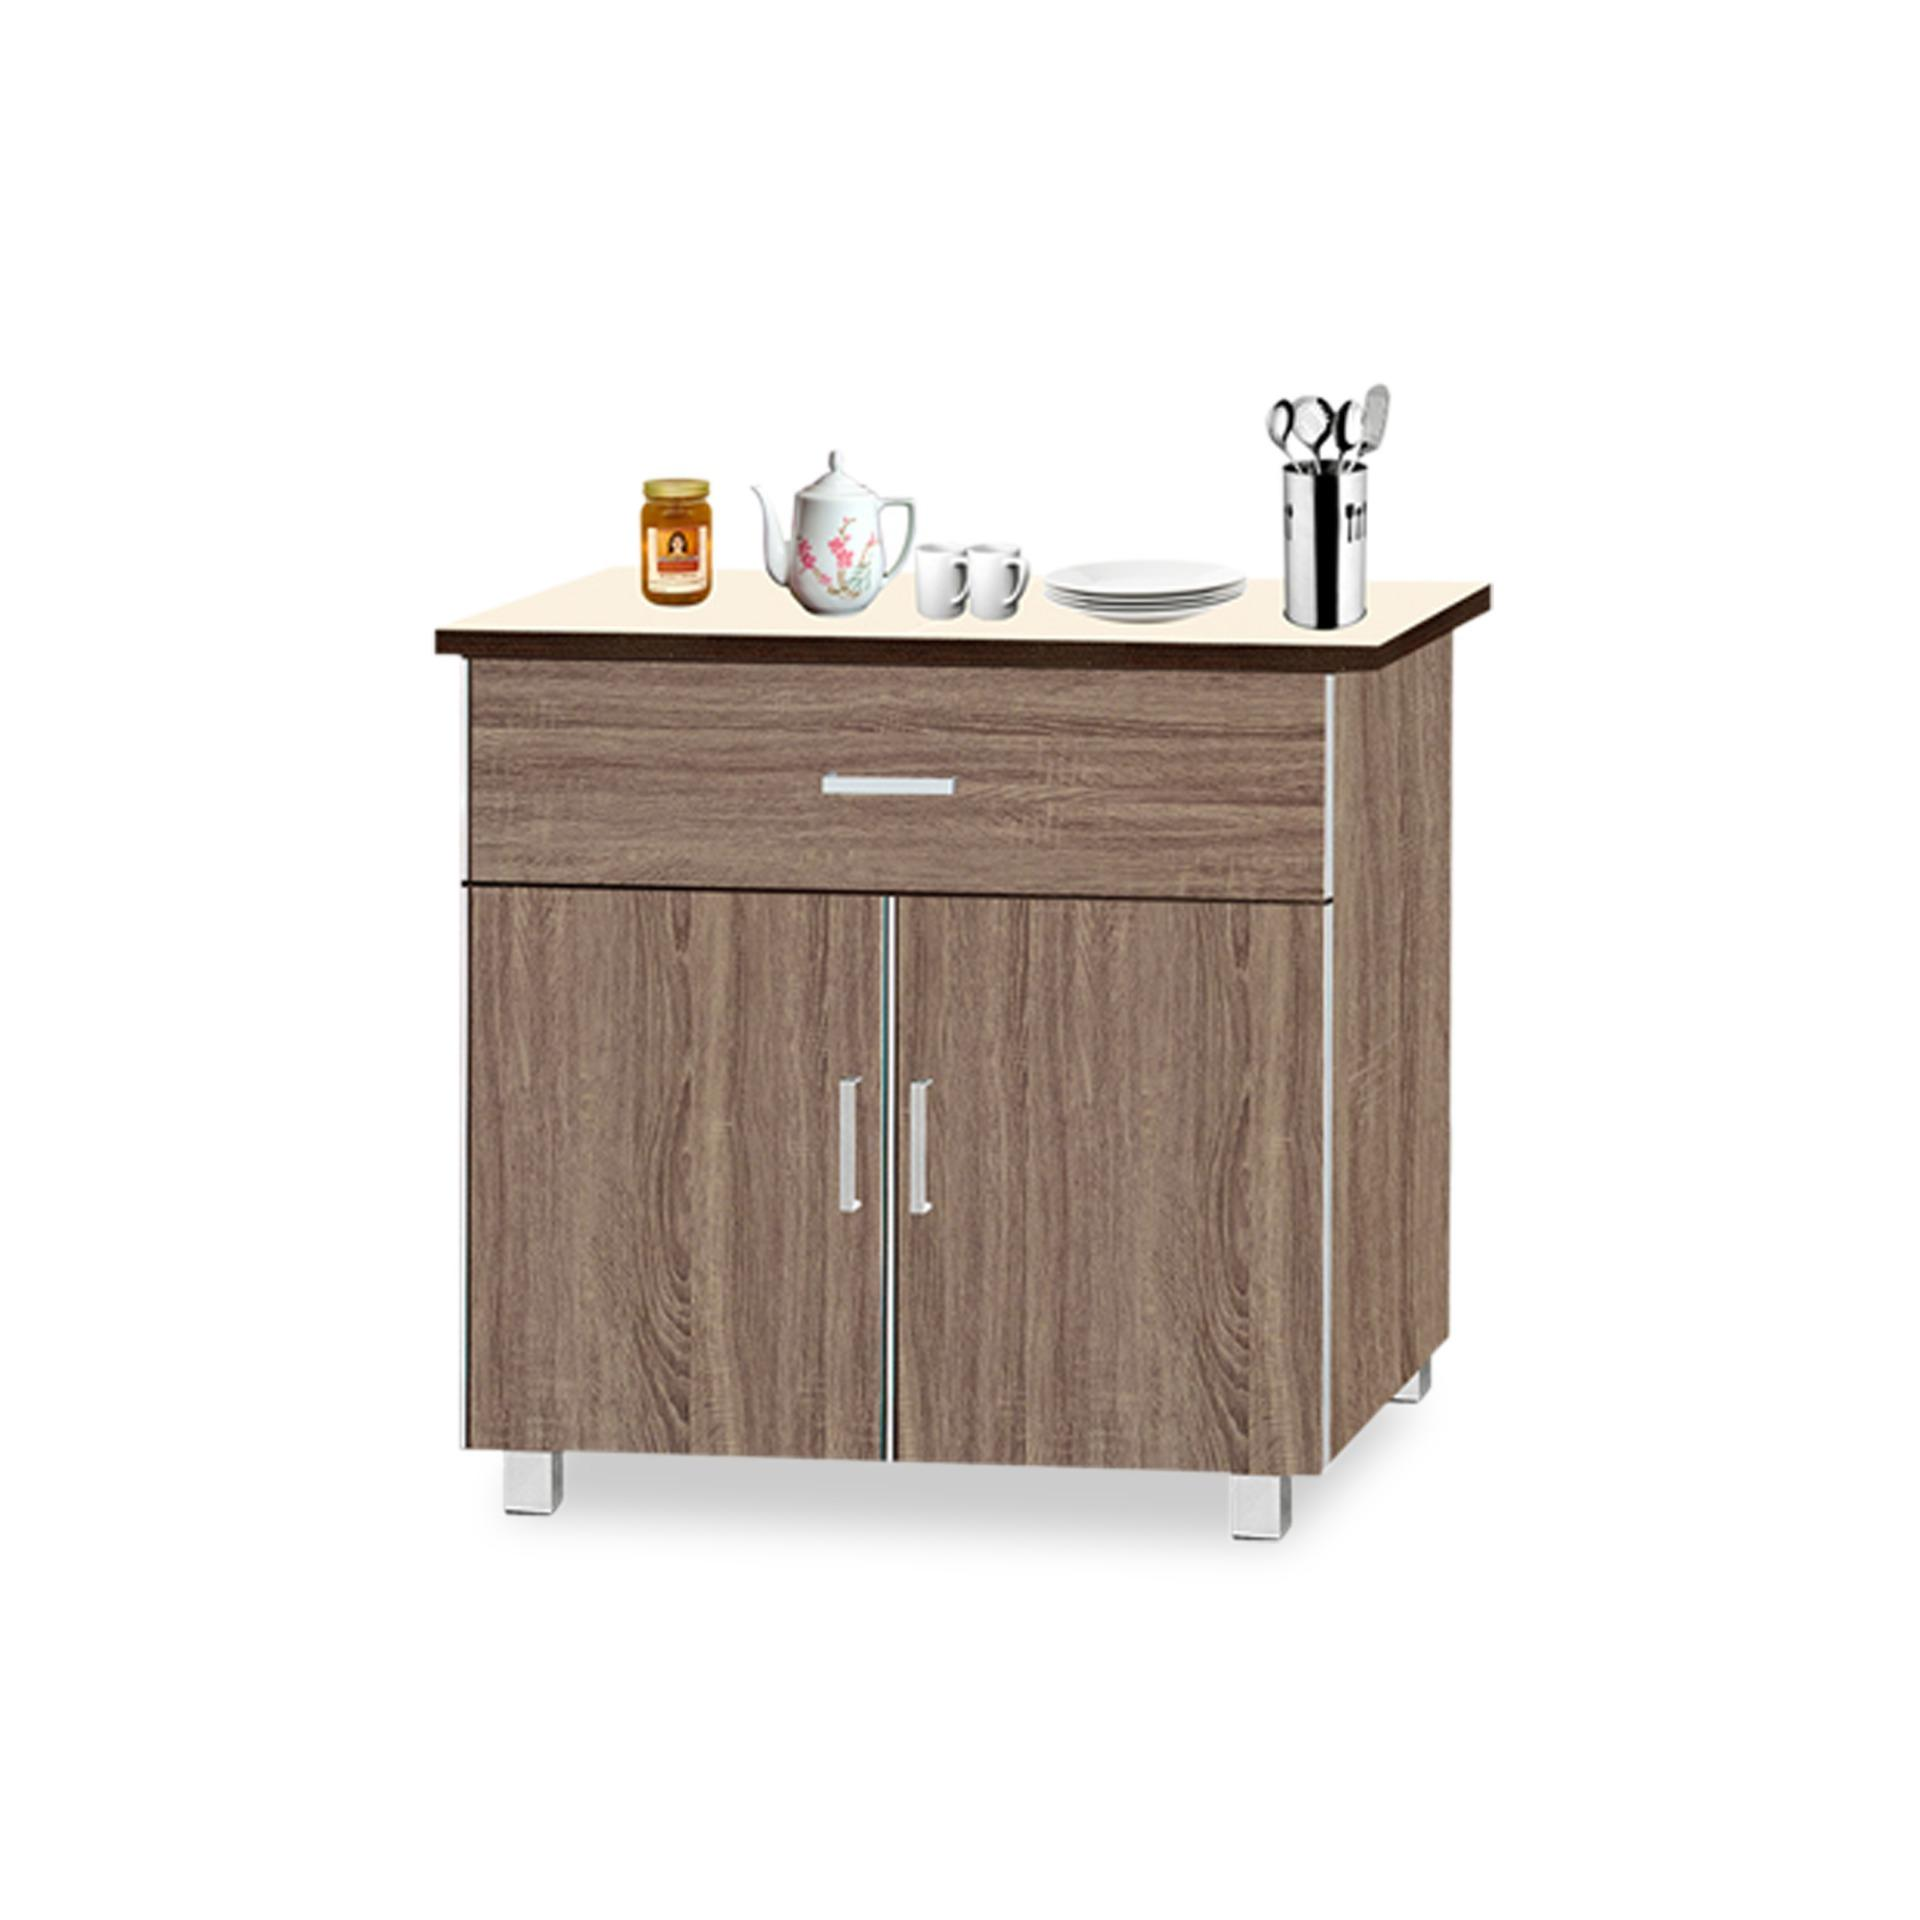 Joshua Dining Cabinet (FREE DELIVERY)(FREE ASSEMBLY)